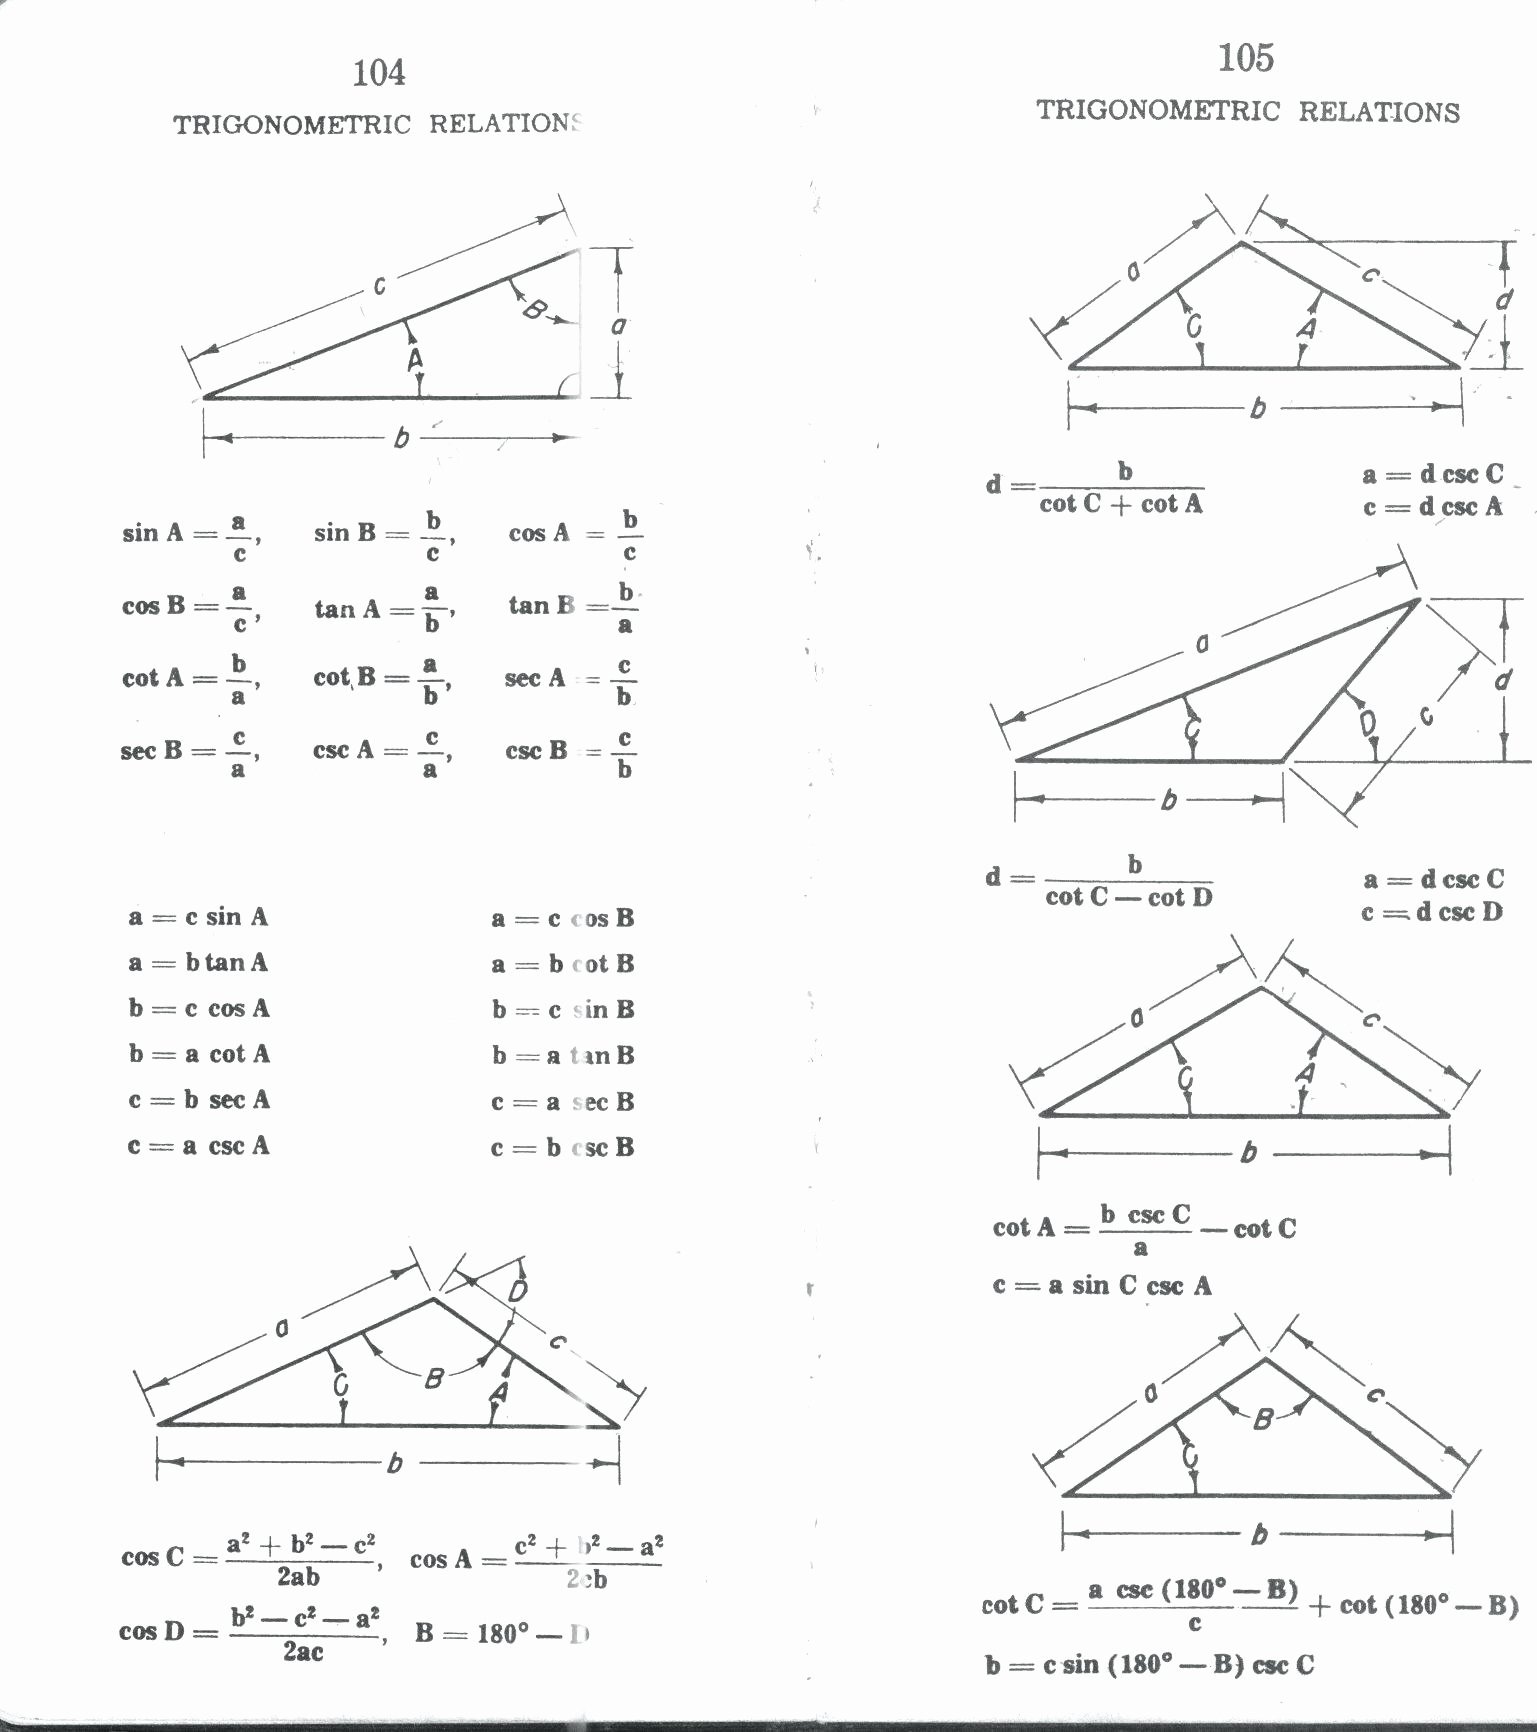 Right Triangle Word Problems Worksheet Awesome Trig Word Problems Worksheet Funresearcher